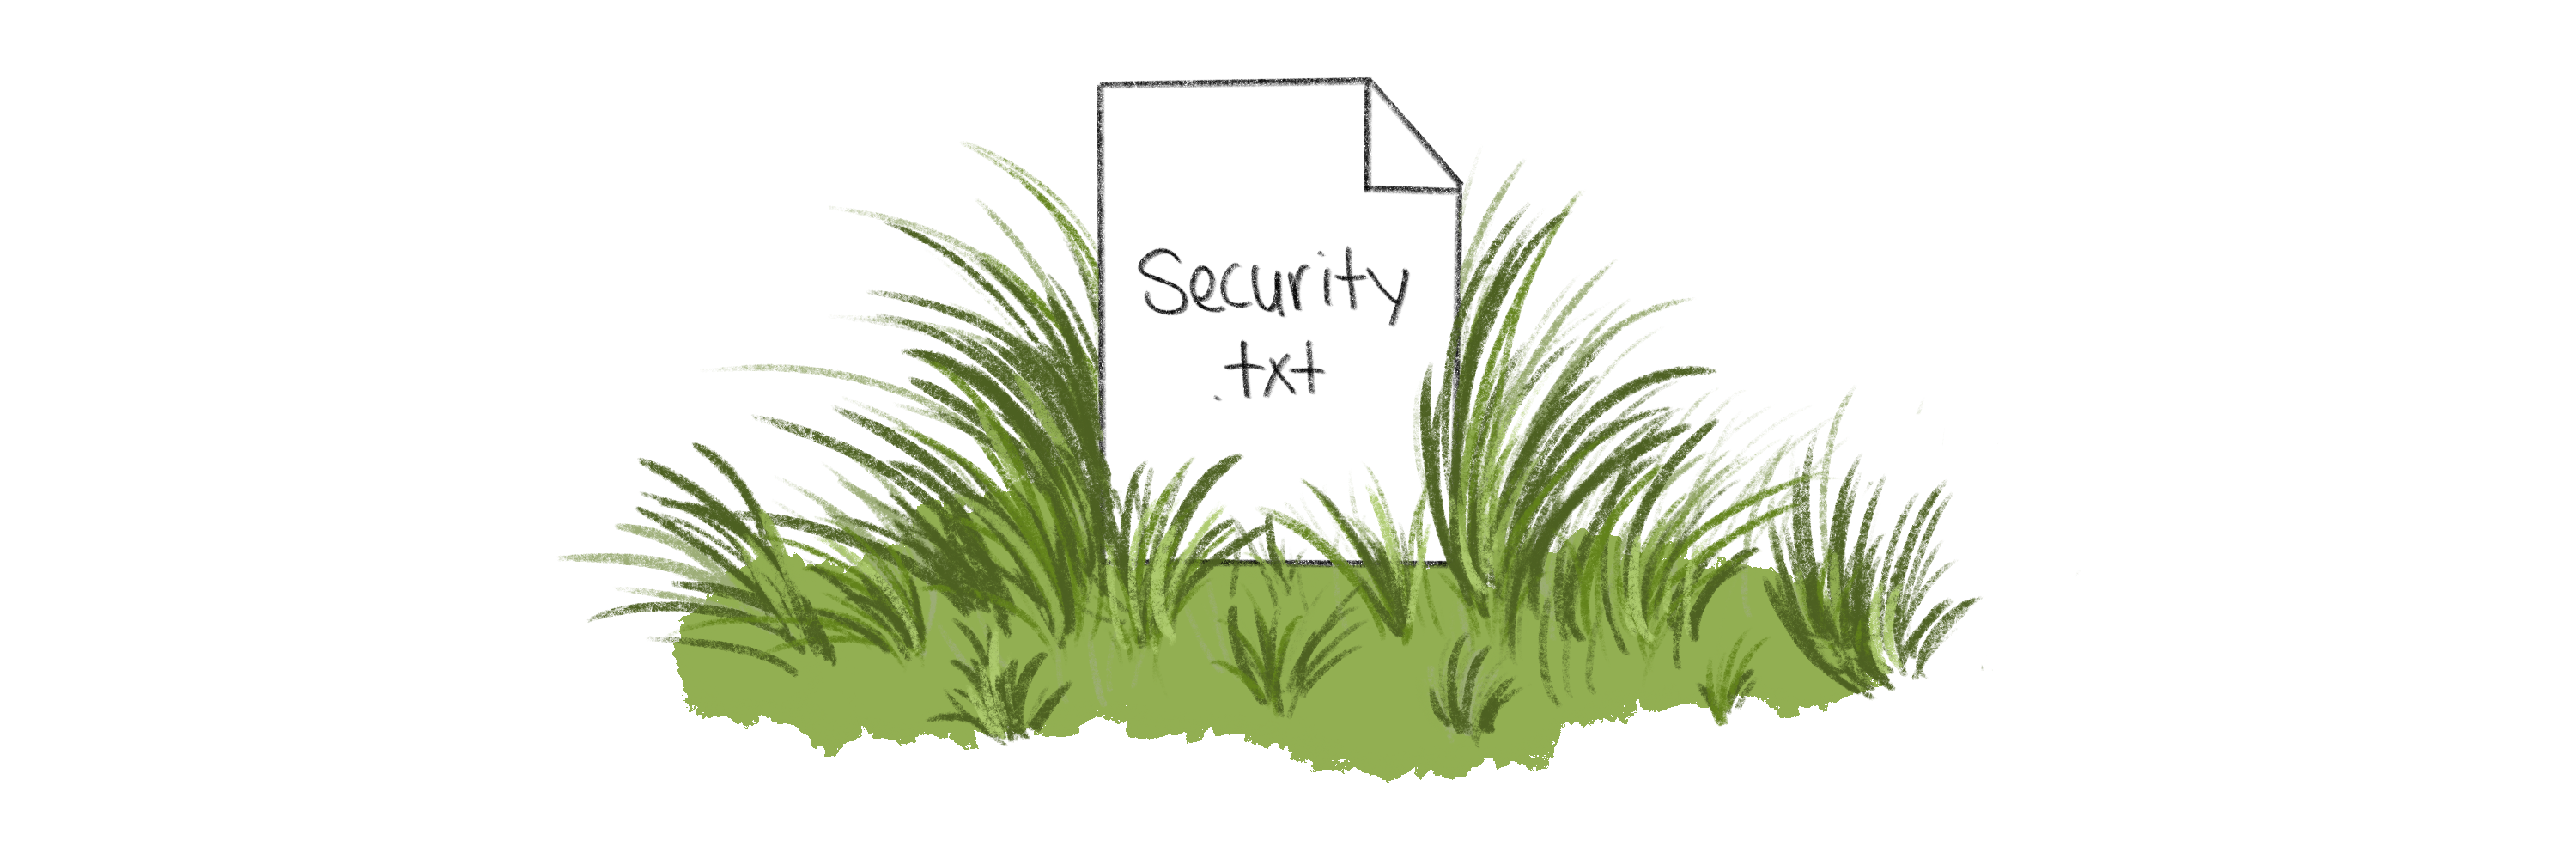 """A file icon labeled """"security.txt"""" with grass around it"""